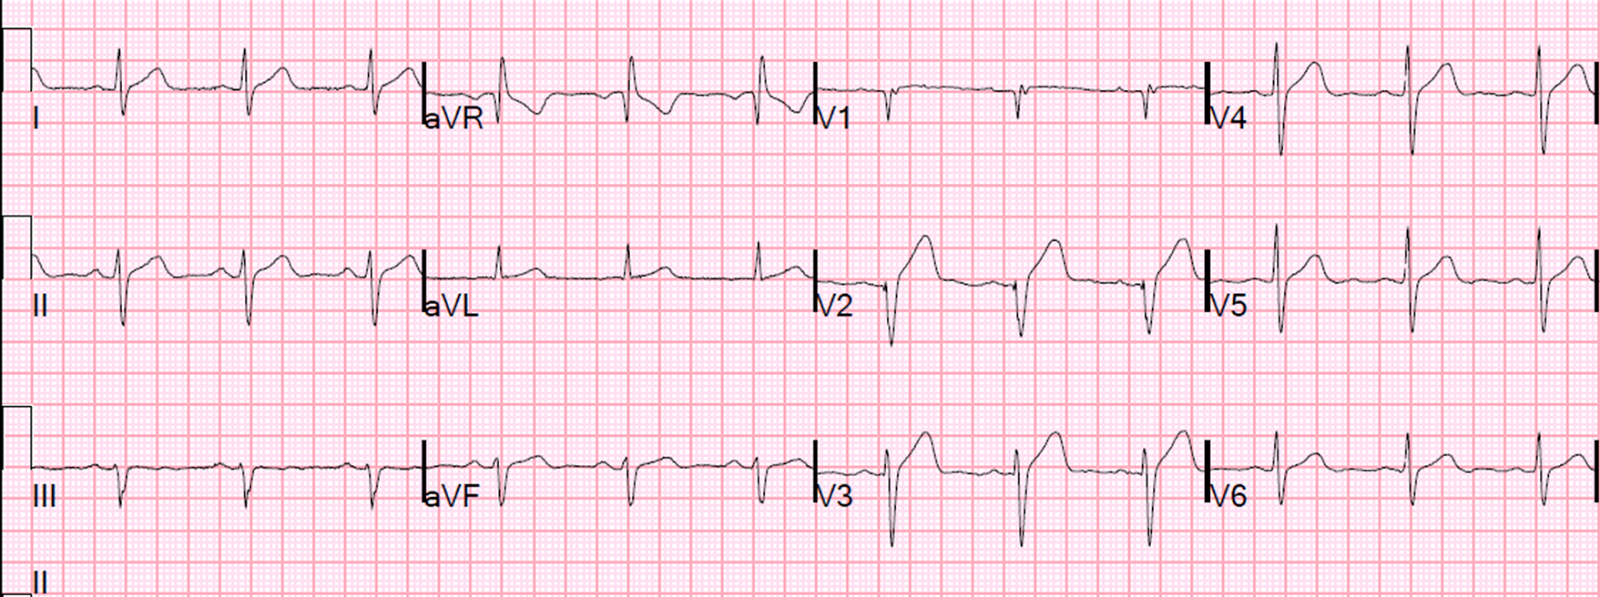 37 yo with 1.5 hours of burning chest pain